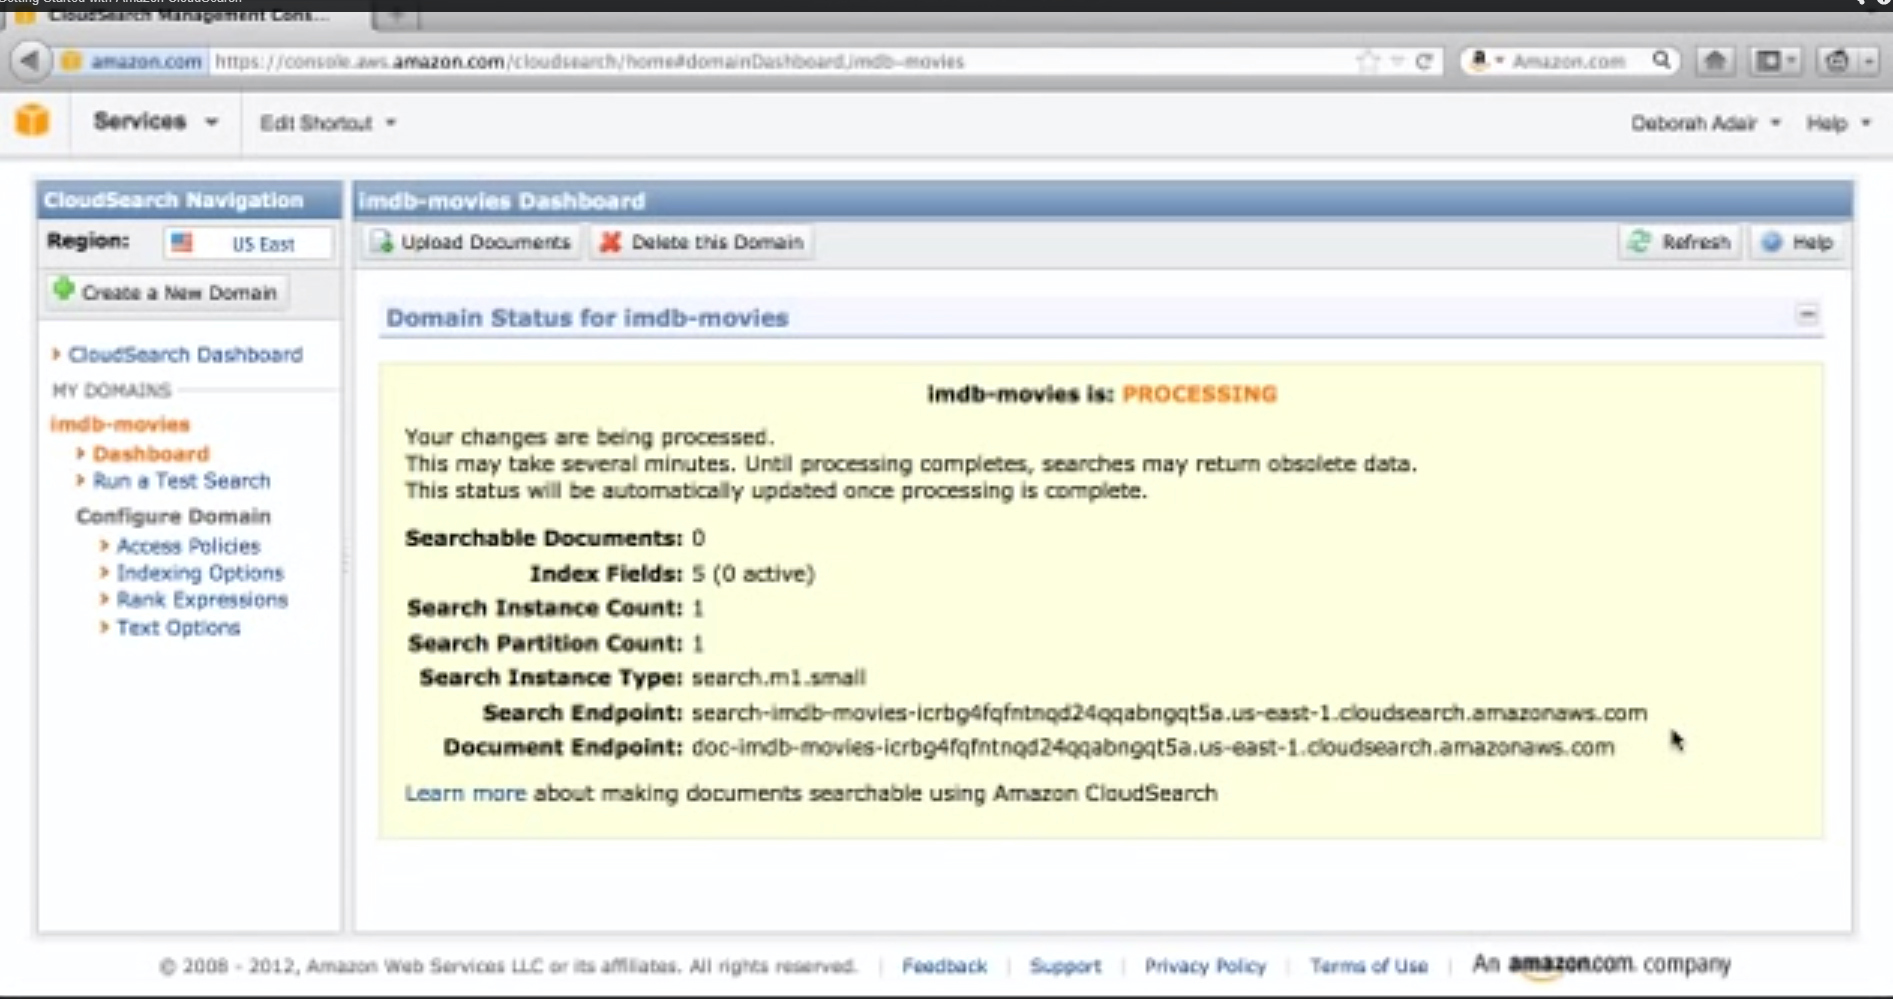 AmazonCloudSearch-WebsiteSearch-Dashboard